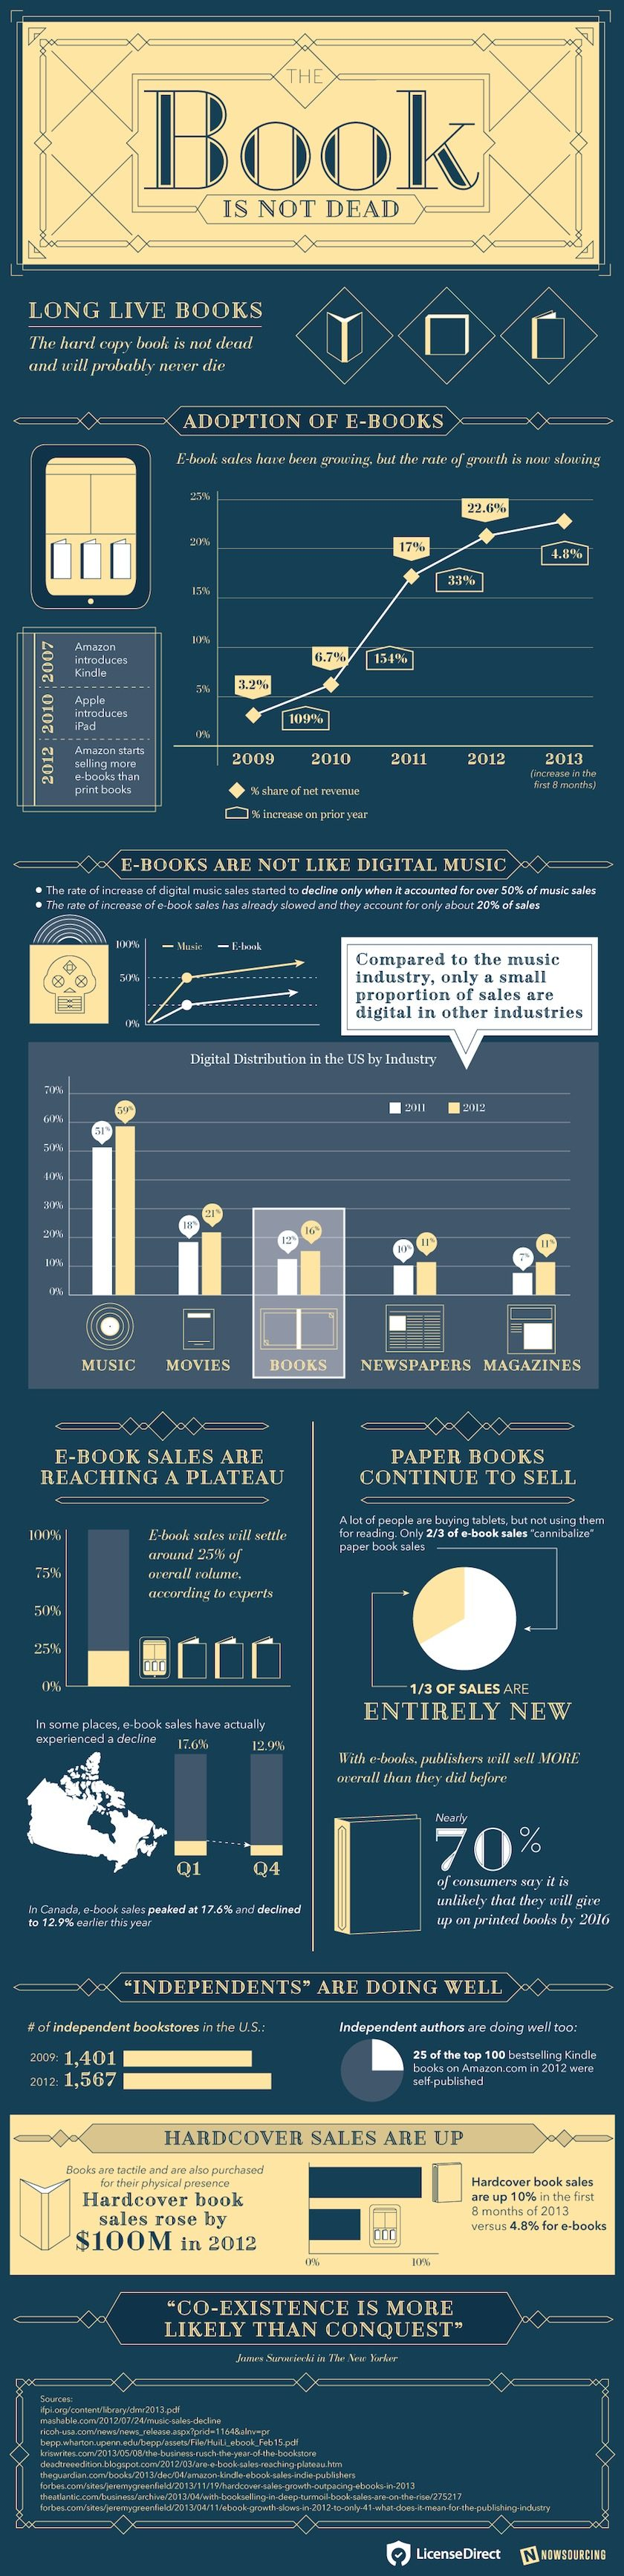 The print book will never die #infographic